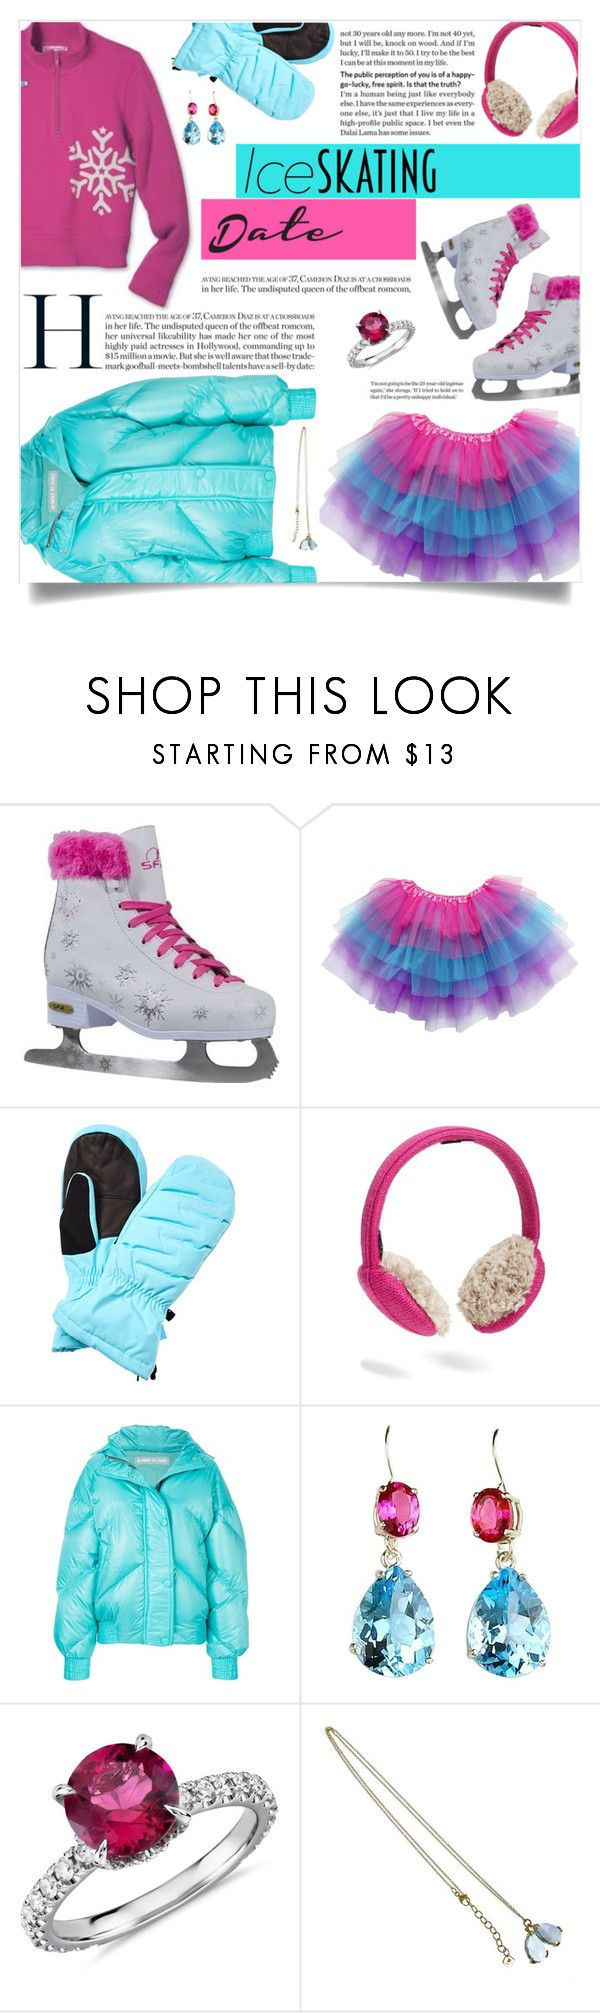 """""""Skate Date: Ice Skating Outfit"""" by ezgi-g ❤ liked on Polyvore featuring Spyder, U R, Ienki Ienki, Gemjunky, Blue Nile and iceskatingoutfit"""